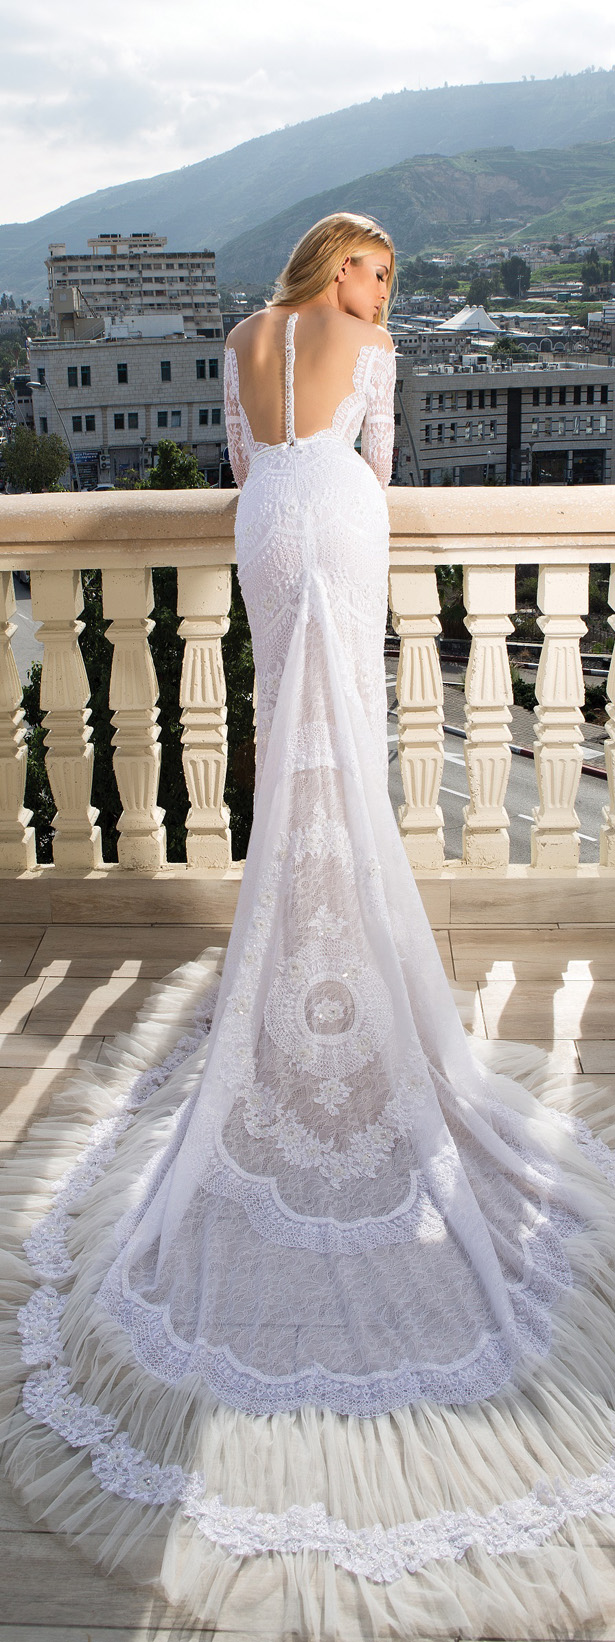 shabiisrael-2015-wedding-dresses-53